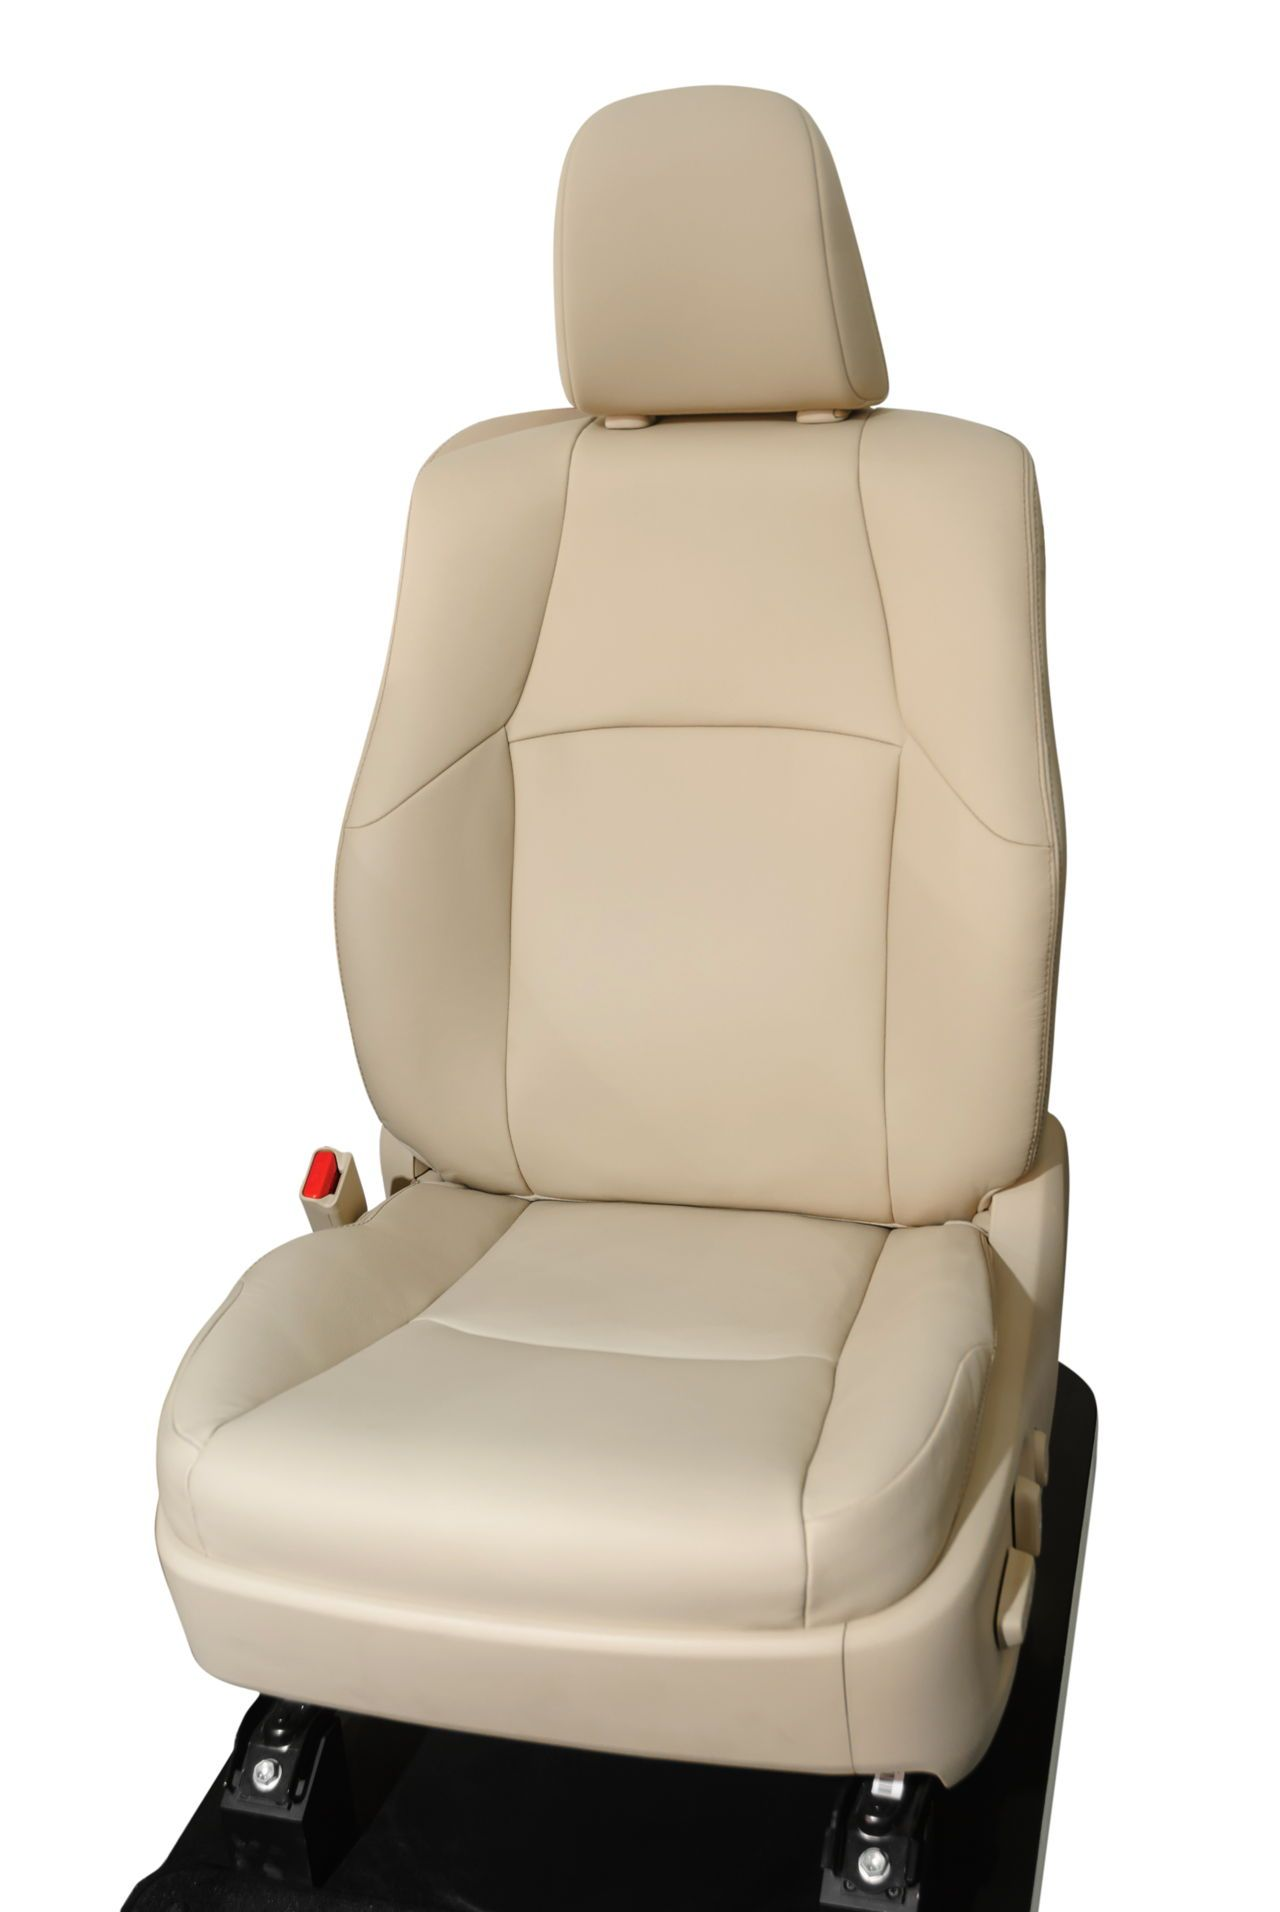 Beige vehicle seat clean leather seats leather seat